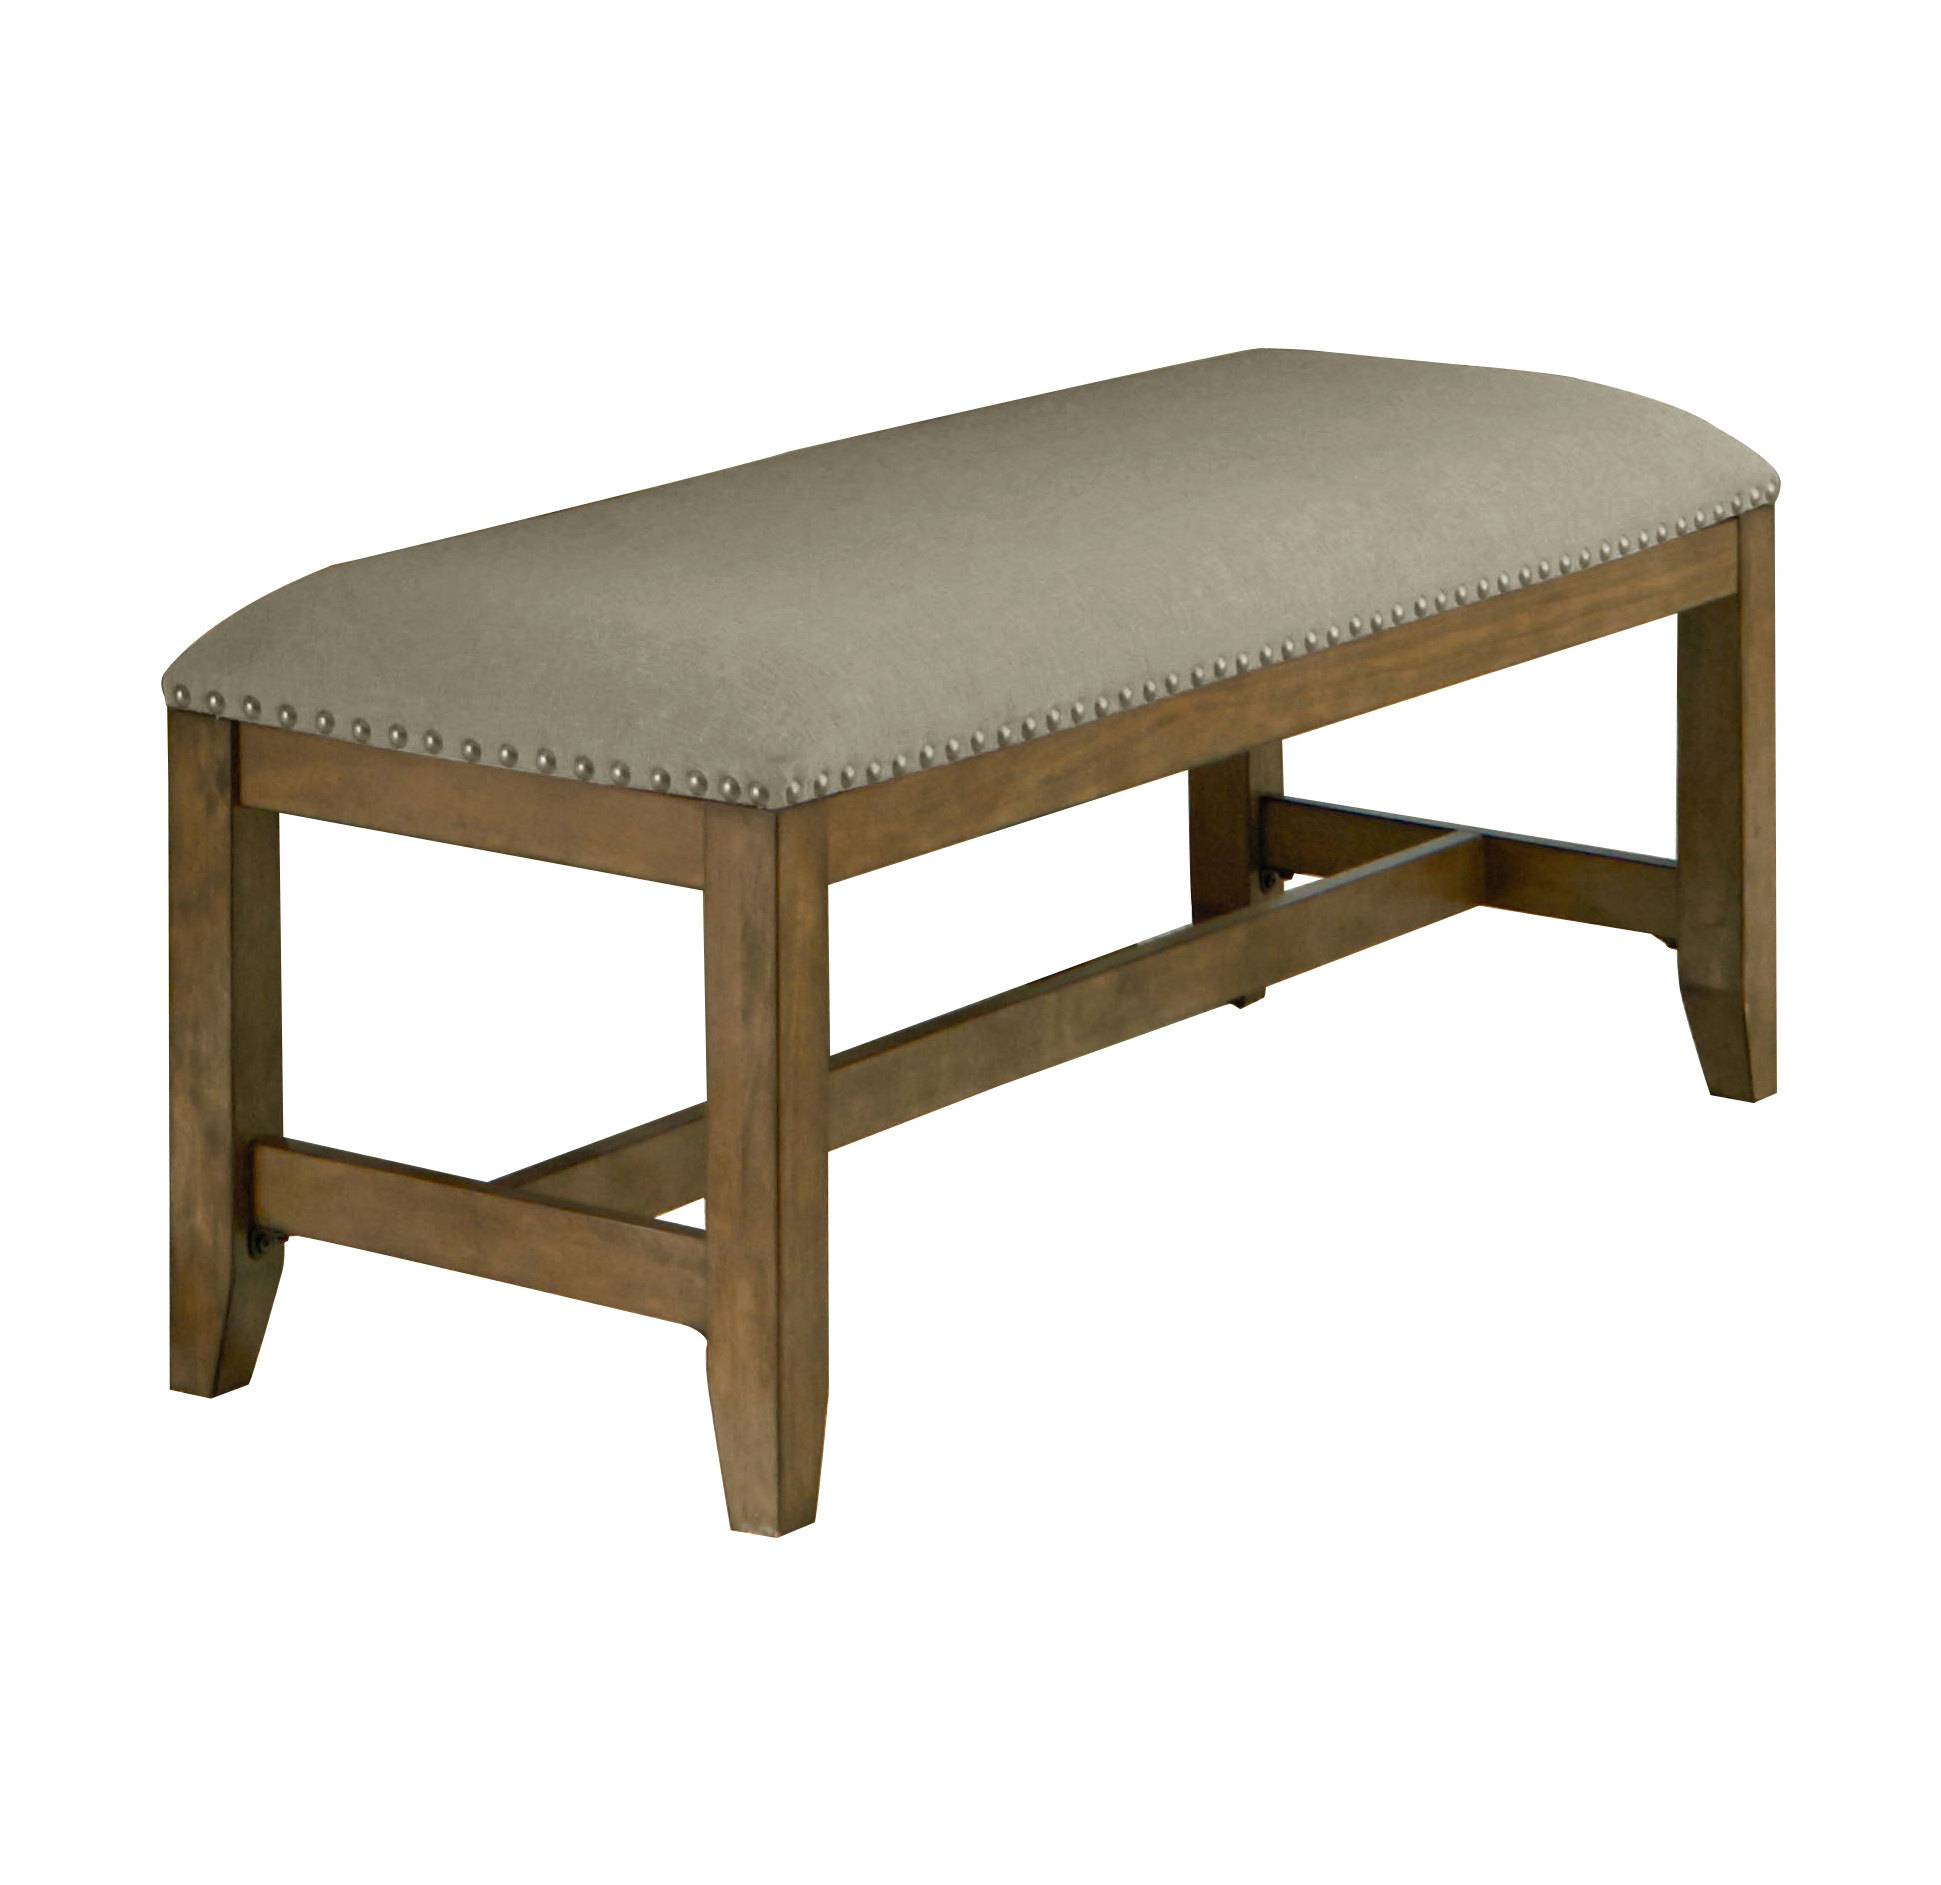 Summer Kitchen Omaha: Standard Furniture Omaha Grey Upholster Bench